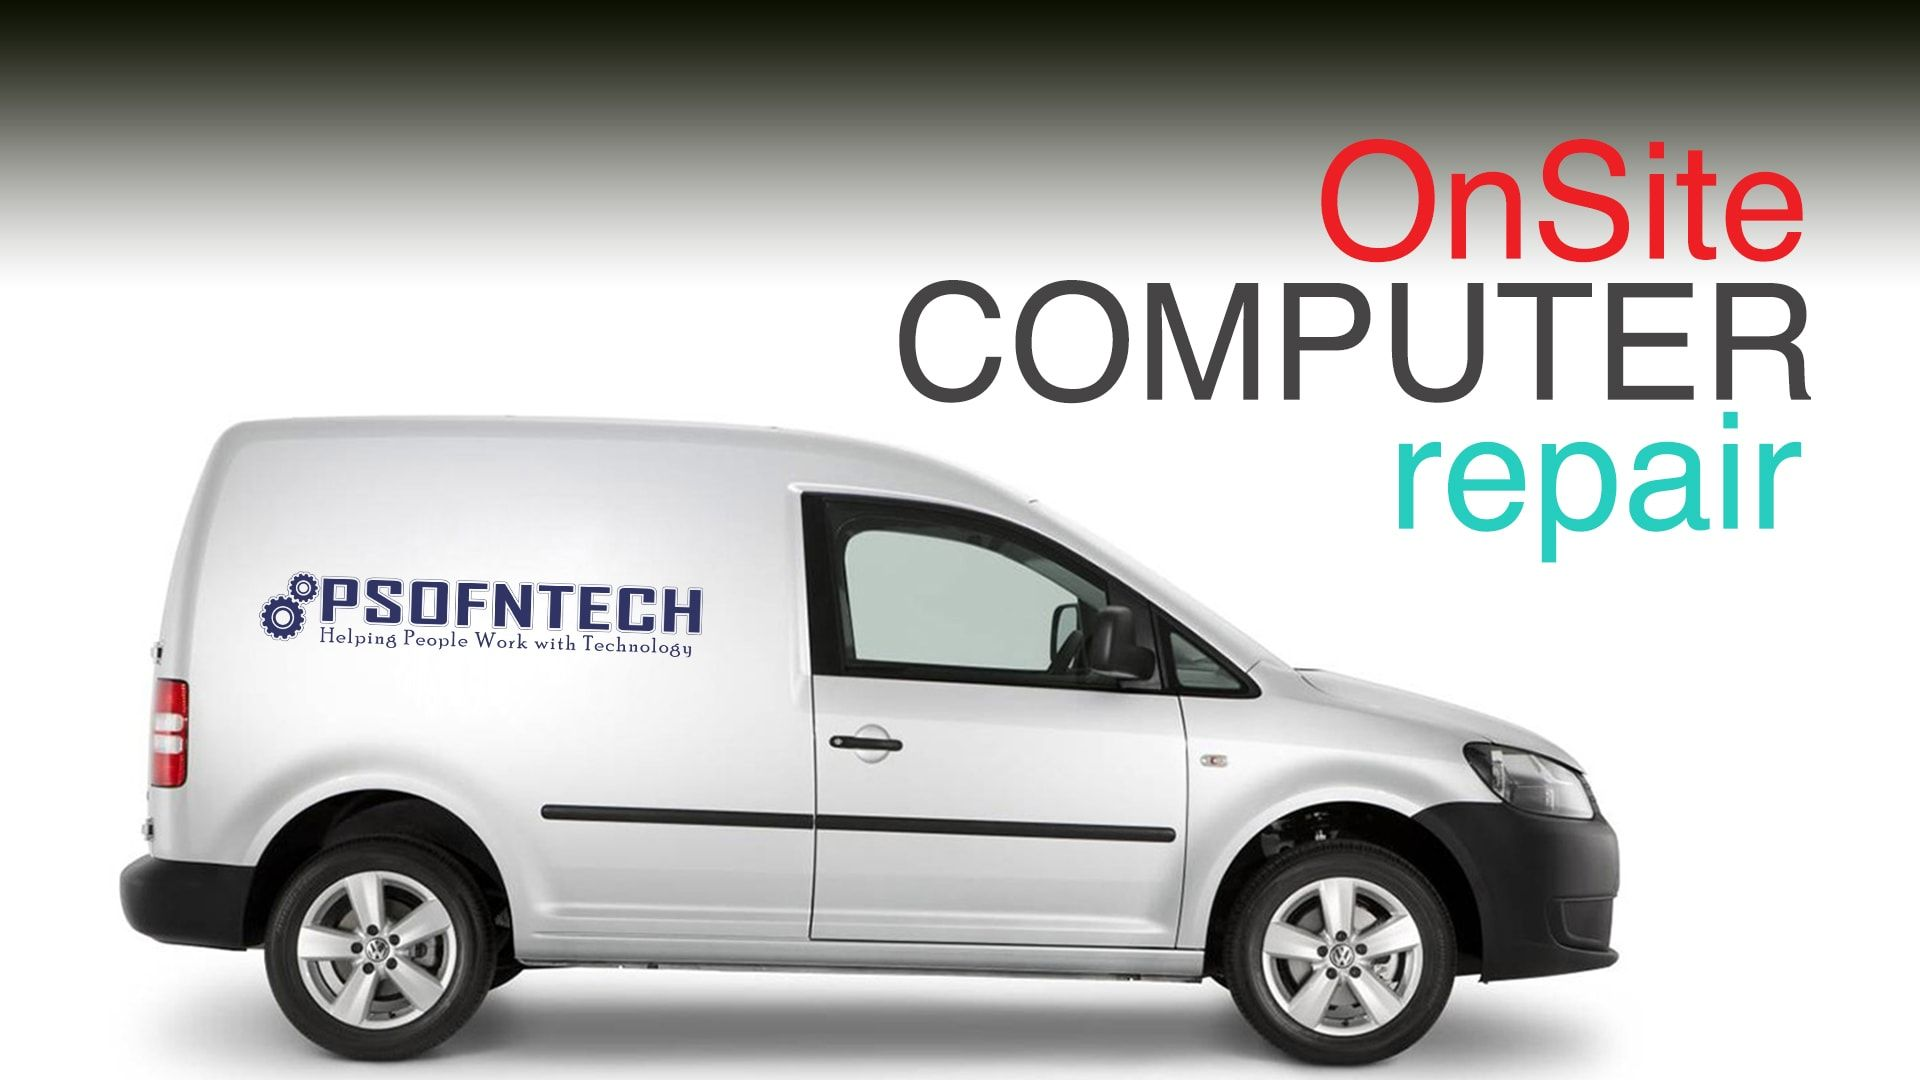 PSOFNTECH Top Onsite Computer, Laptop, Repair in Manhattan New York, Brooklyn